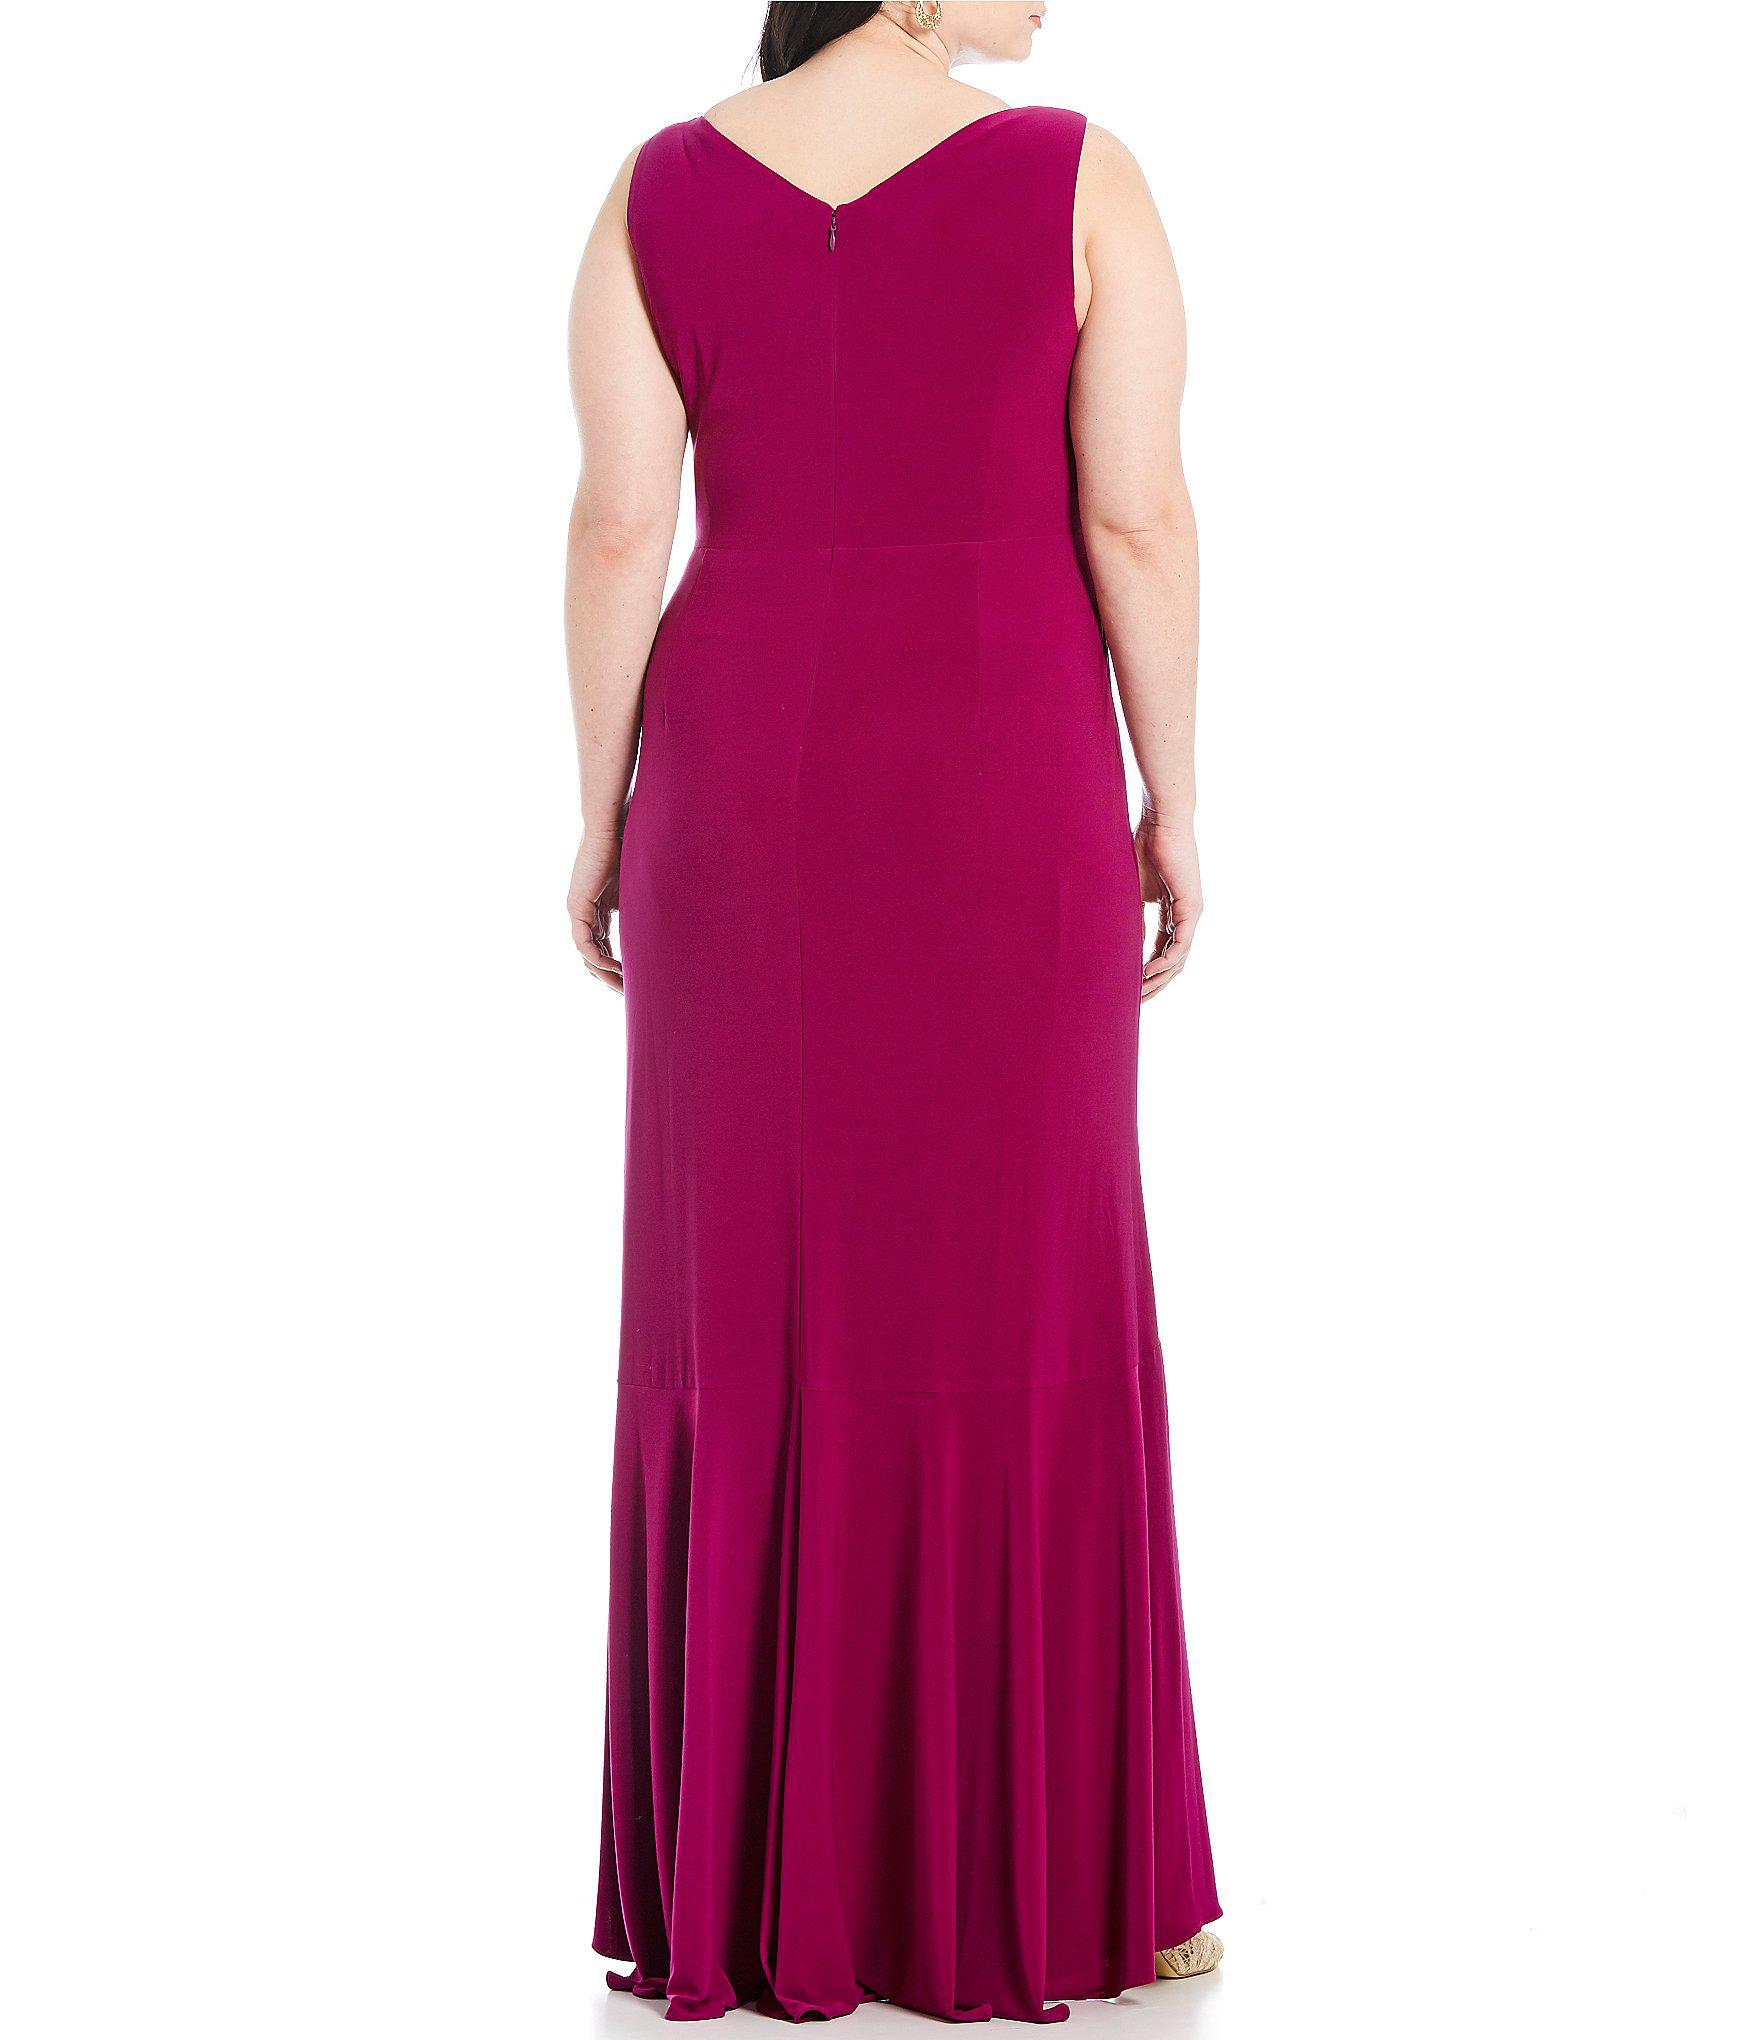 0b91fc67cd37f Adrianna Papell - Purple Plus Size Cascade Gown - Lyst. View fullscreen